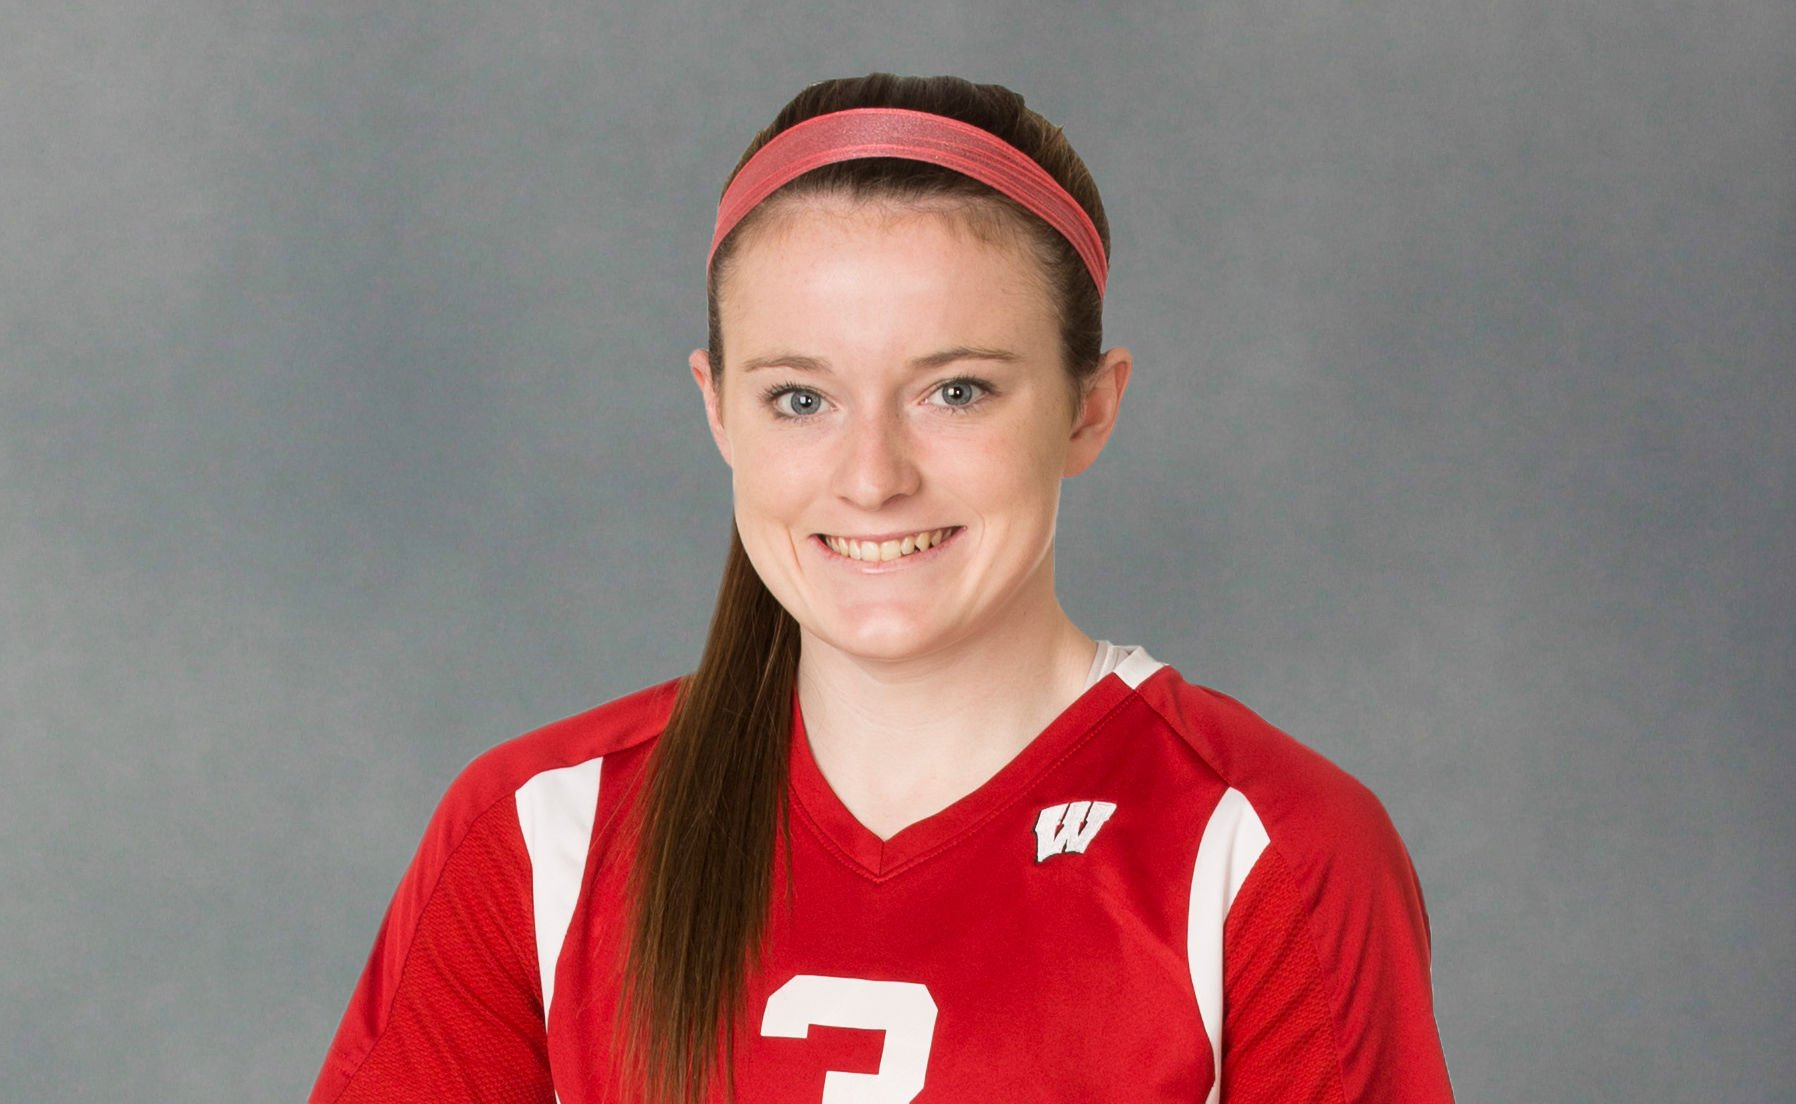 1a56c145537 Badgers women's soccer: Rose Lavelle's national team pursuits take back  seat for final season at Wisconsin